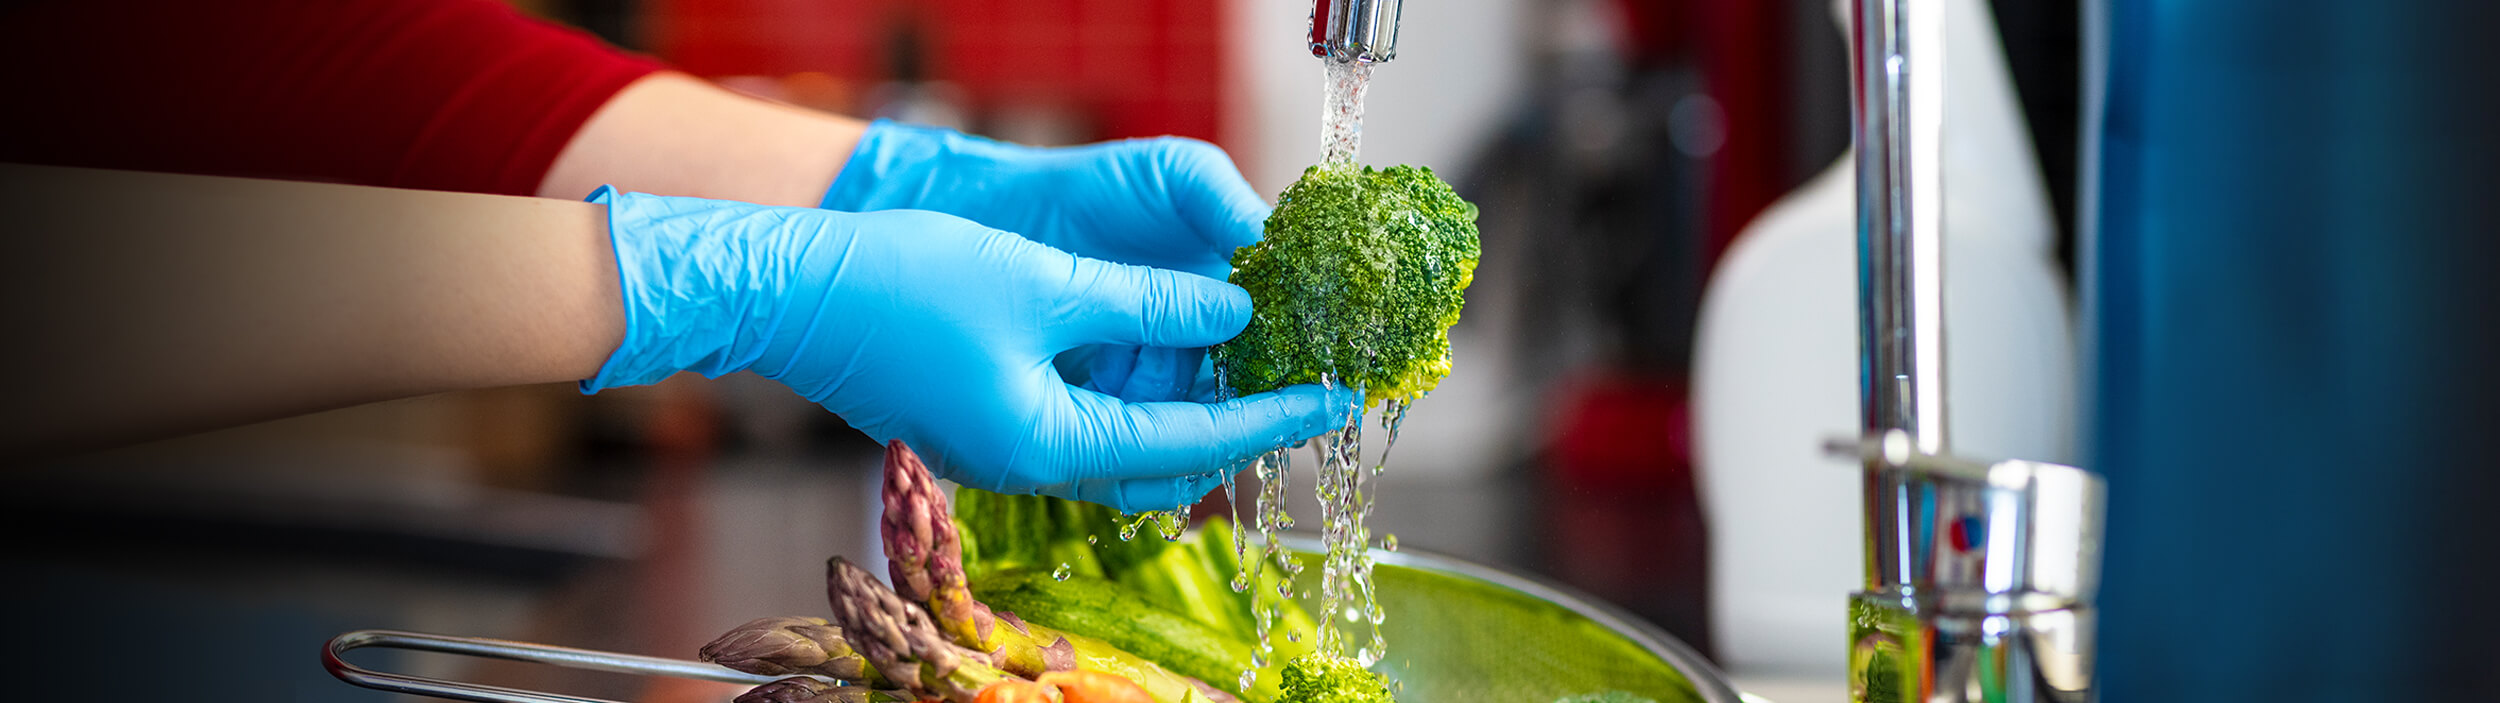 food safety training in Pennsylvania - person's hands washing vegetables - Novick Corporation